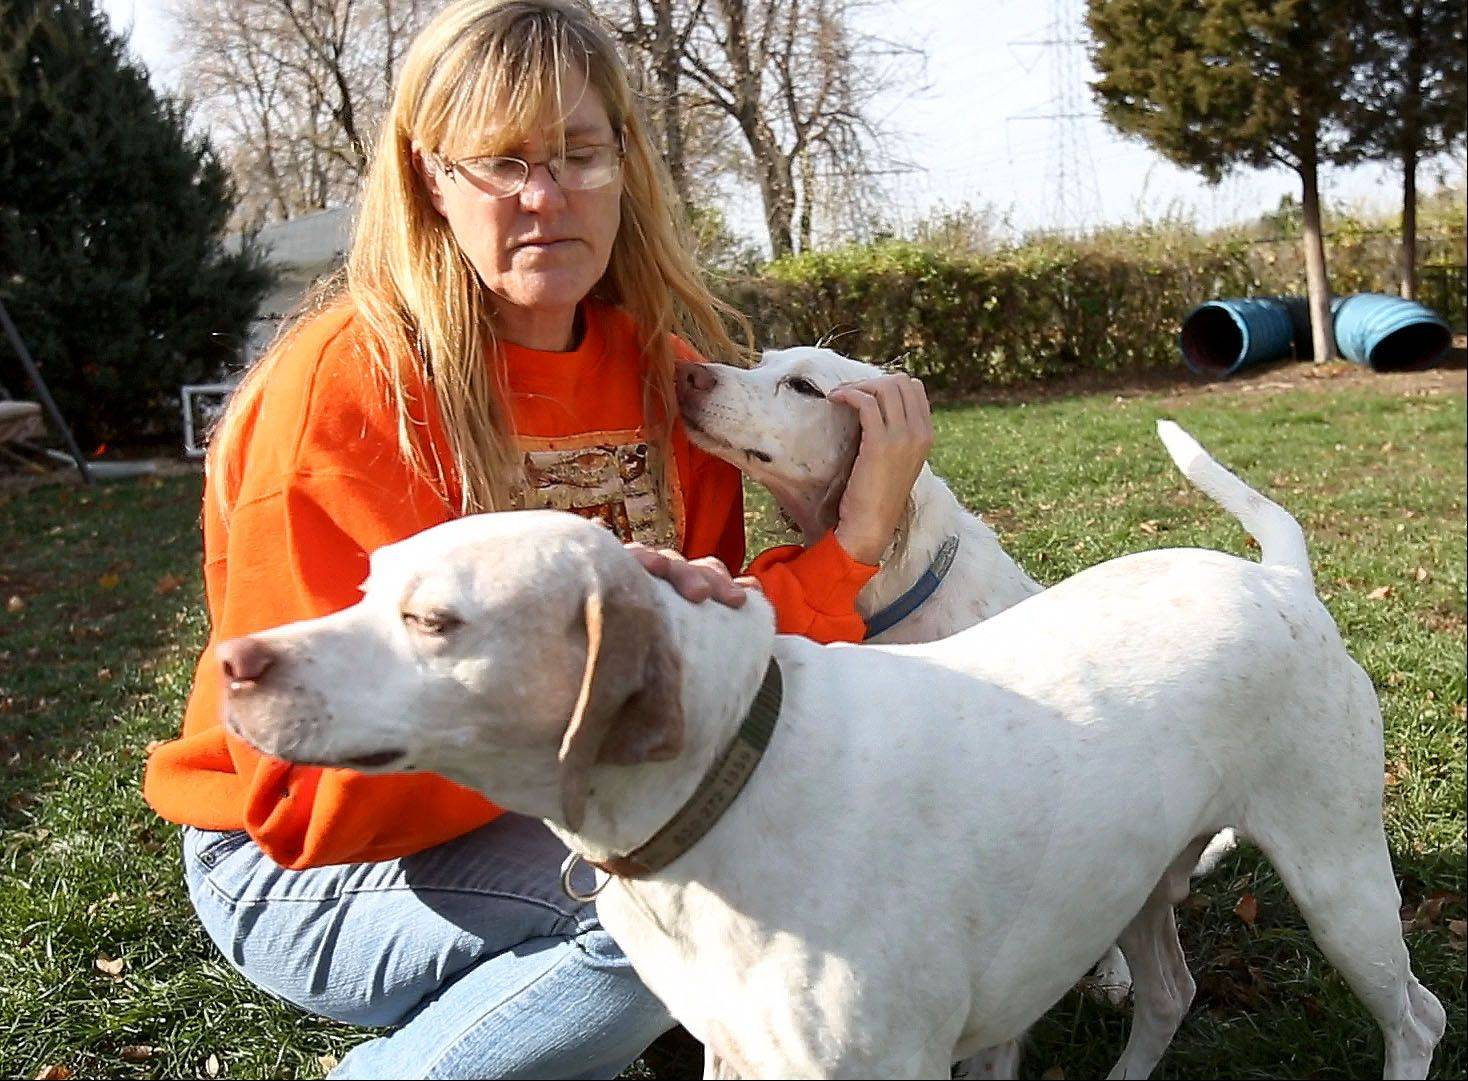 Wood Dale officials say they're dropping a complaint against Lisa Spakowski, a rescue leader who is caring for five dogs — two more than allowed by code.